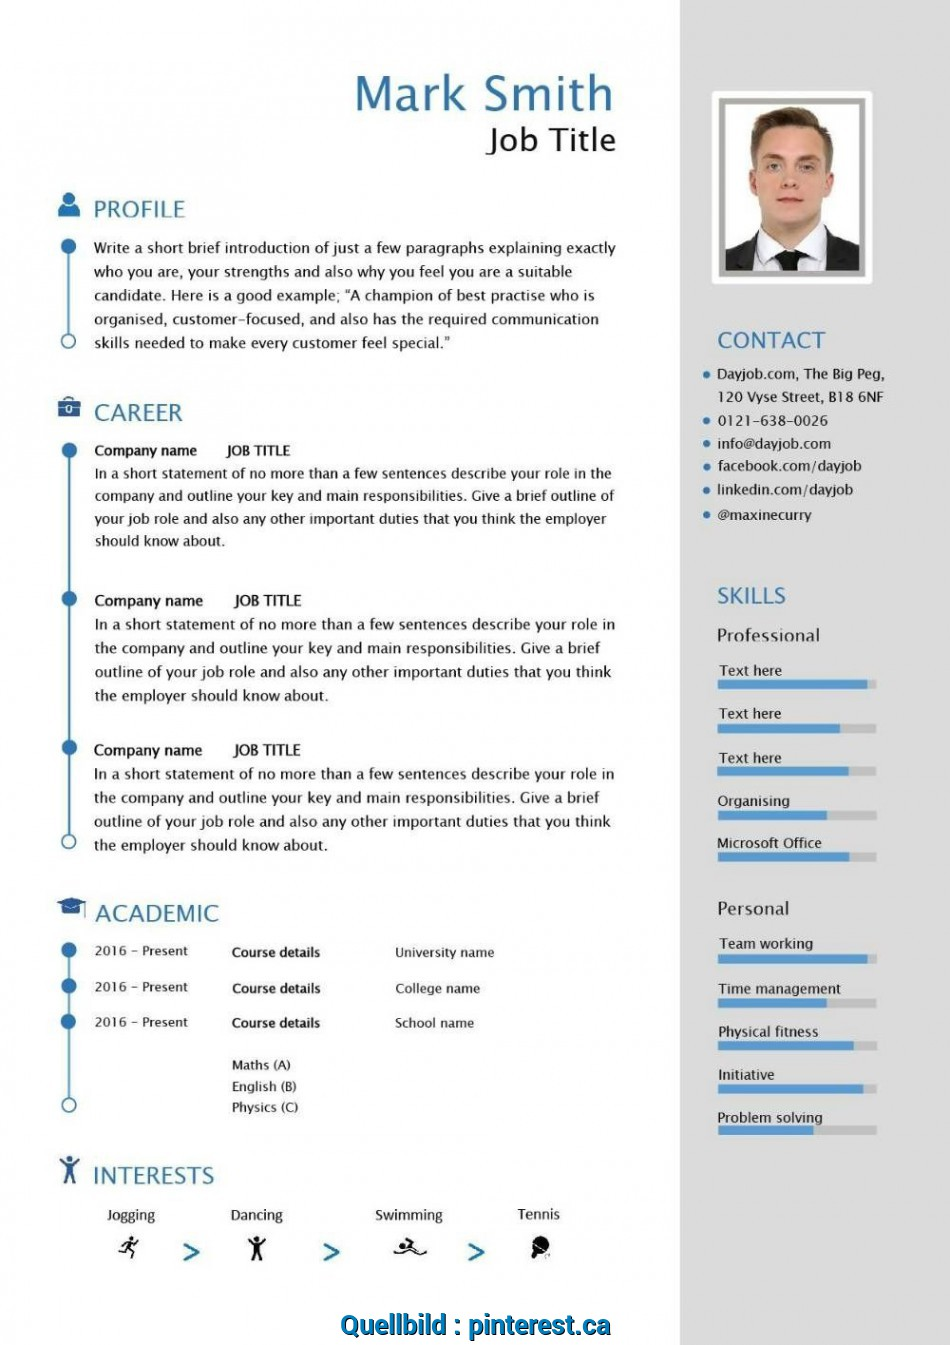 Kostbar Free Downloadable Cv Template Examples Career Advice, To Write, Resume International Format